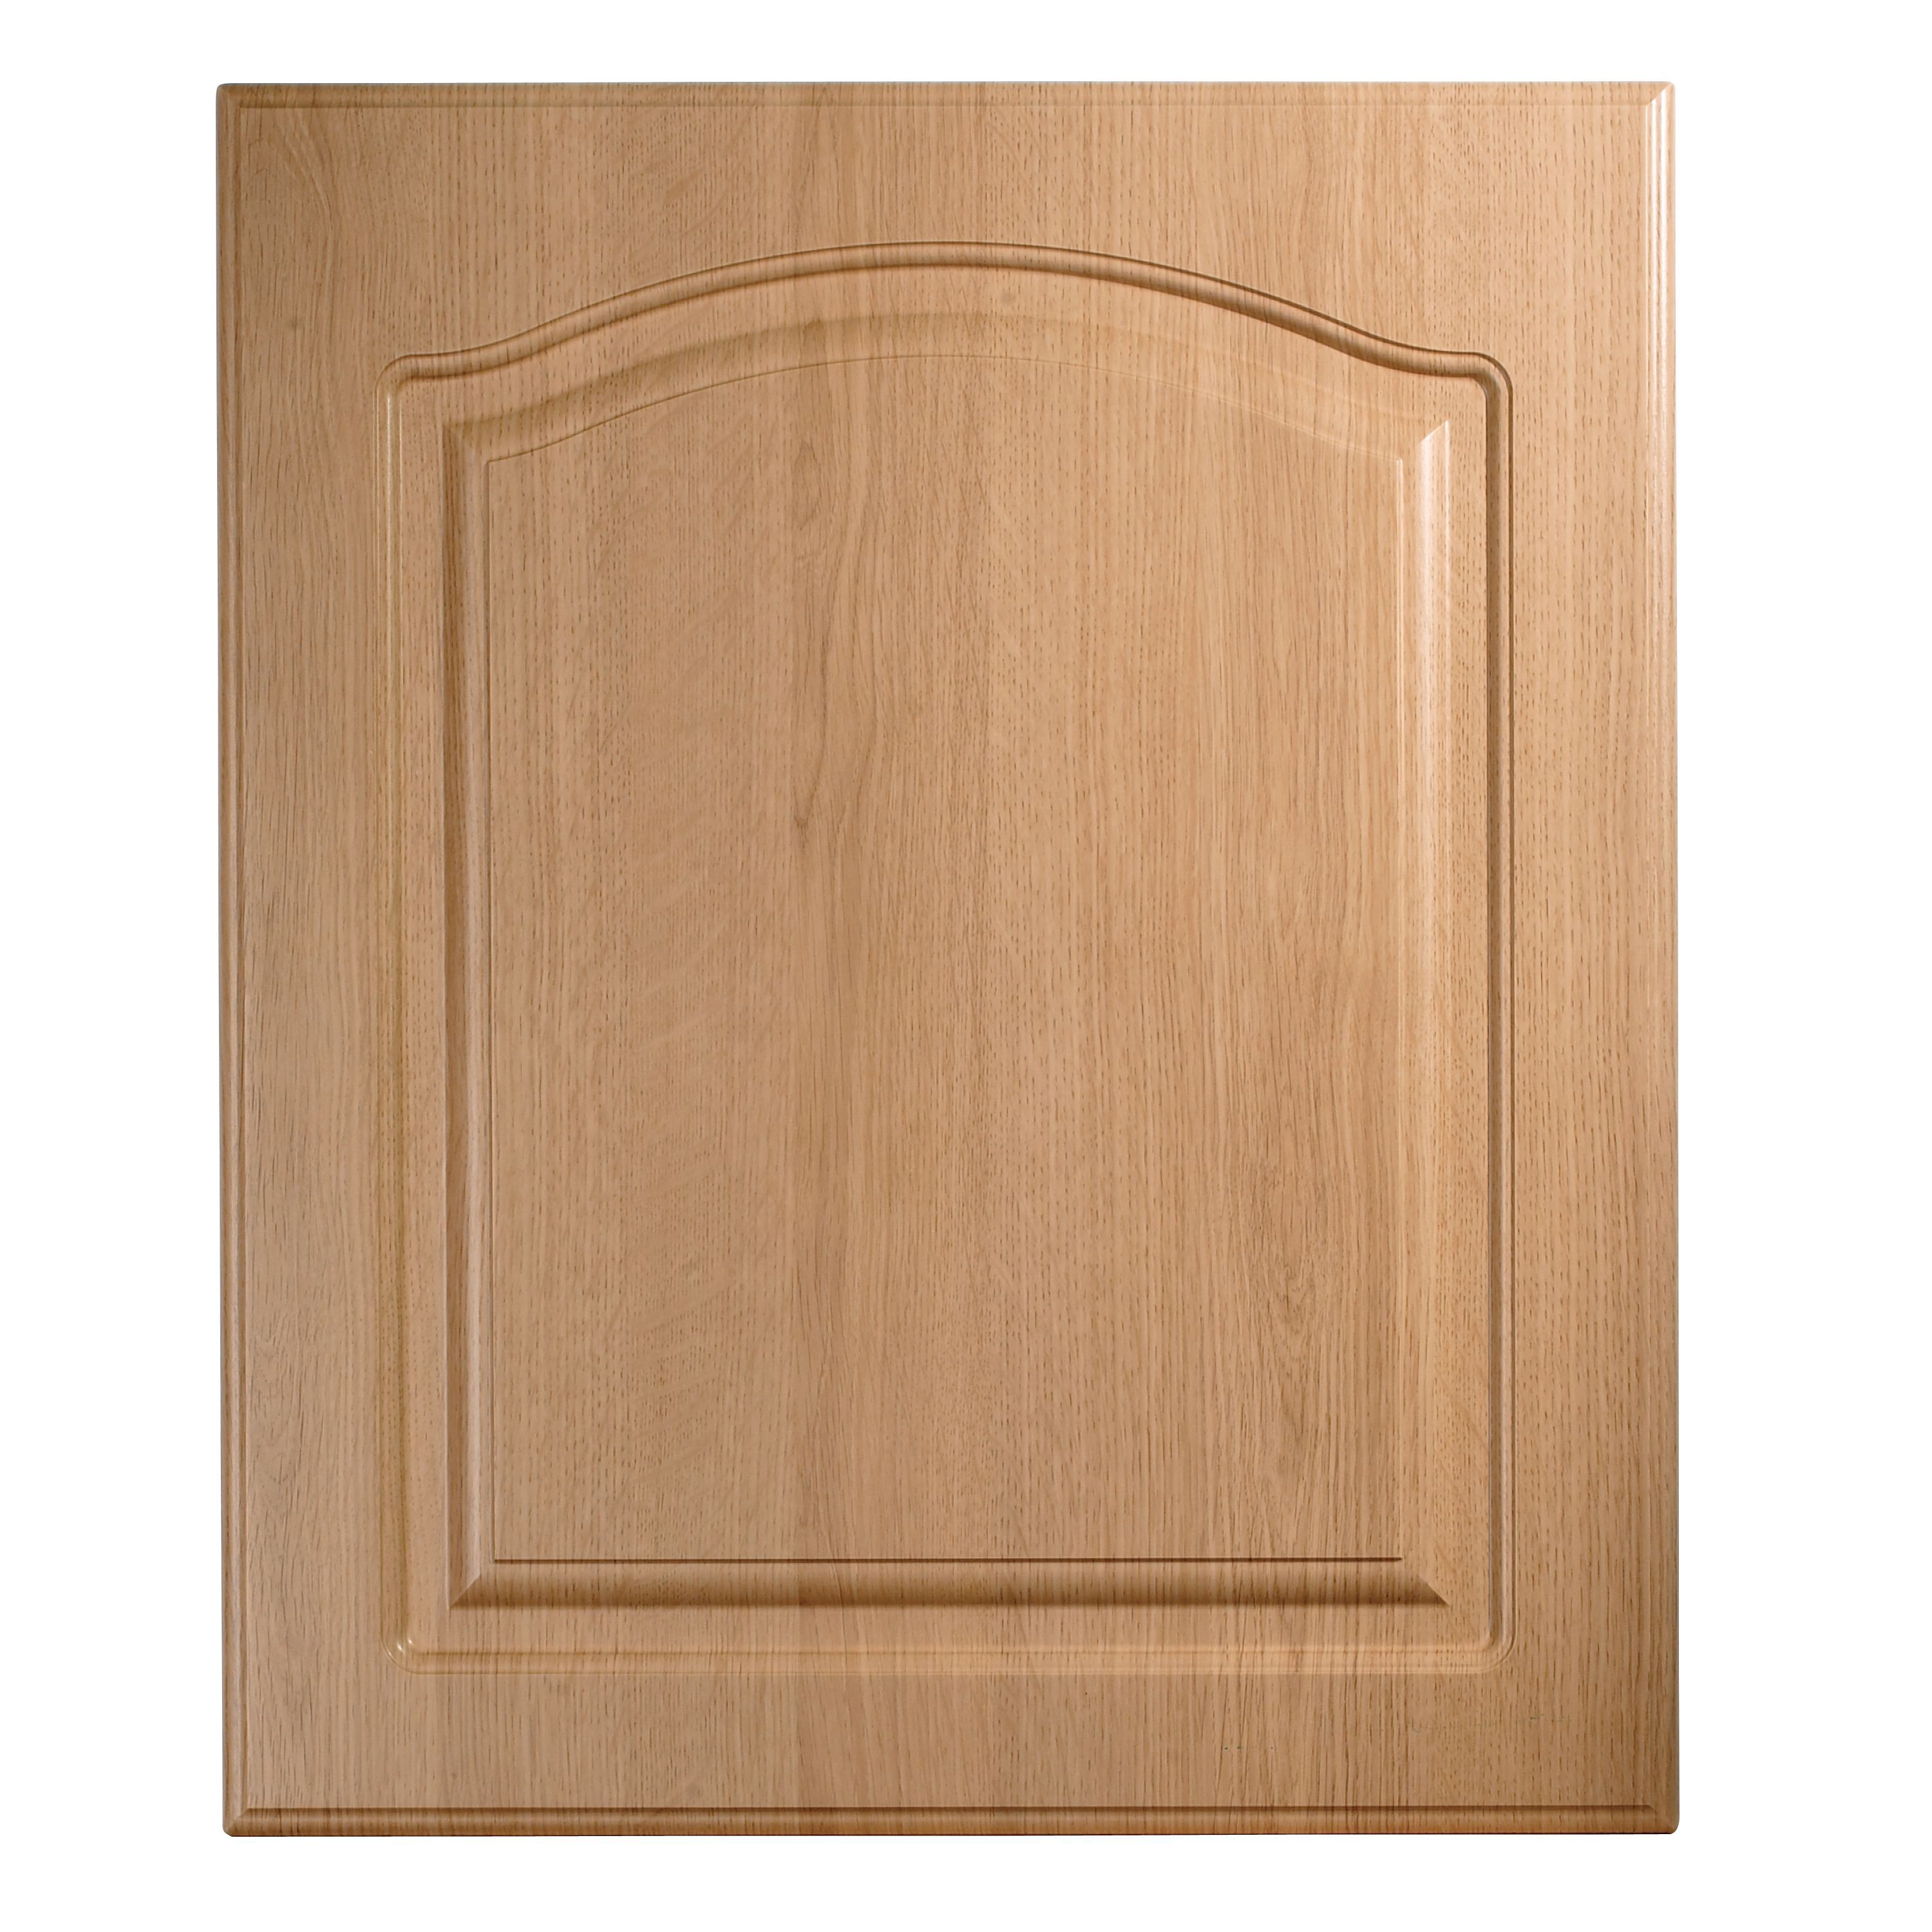 B Q Kitchen Cabinet Doors: IT Kitchens Chilton Traditional Oak Effect Integrated